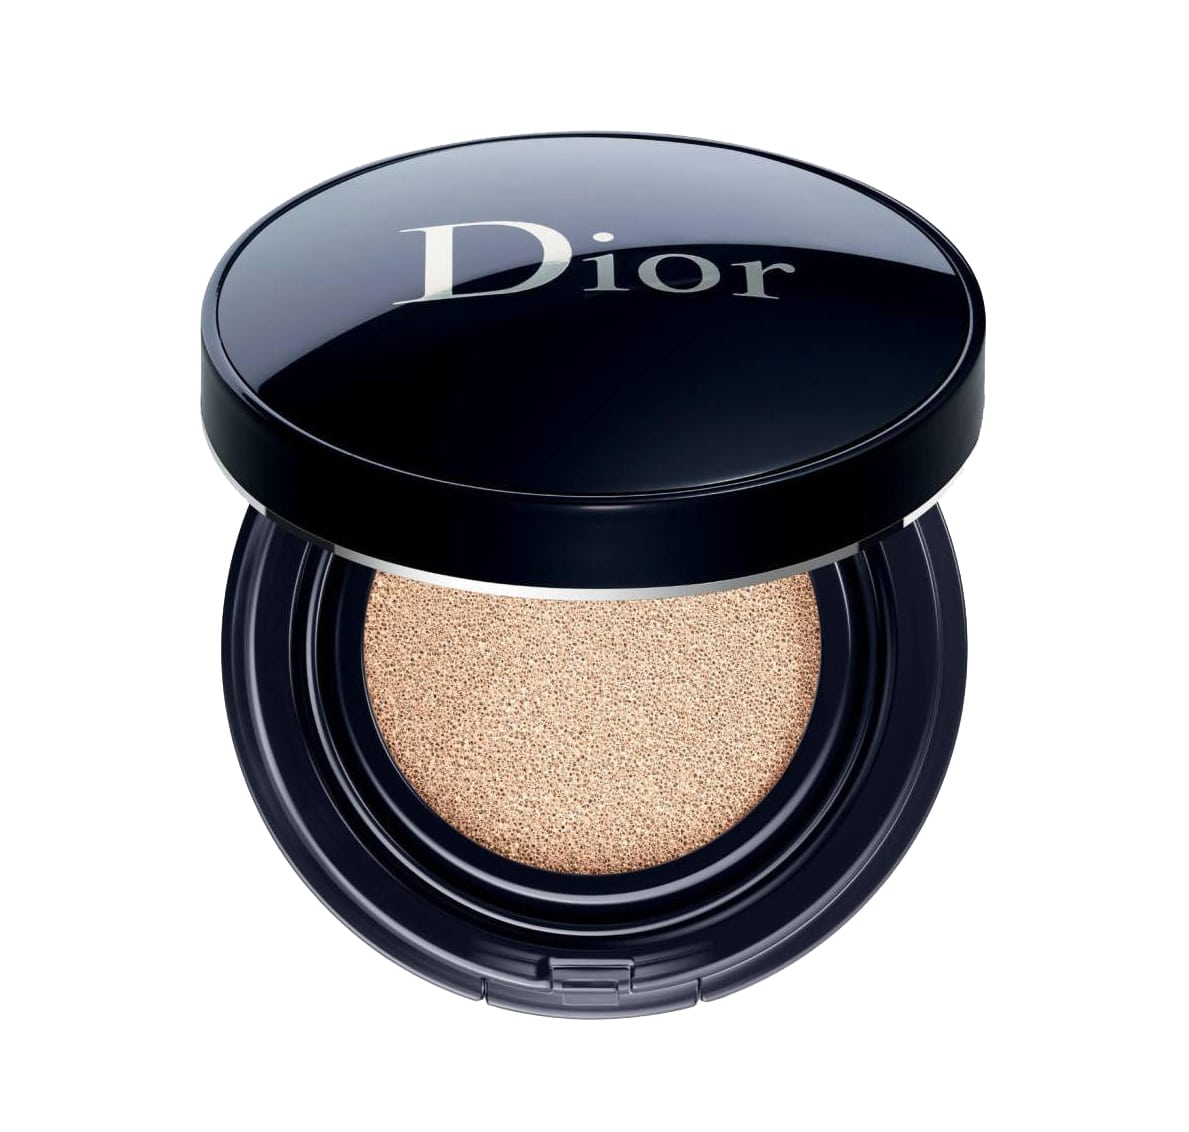 Dior Diorskin Forever Perfect Cushion Fondotinta